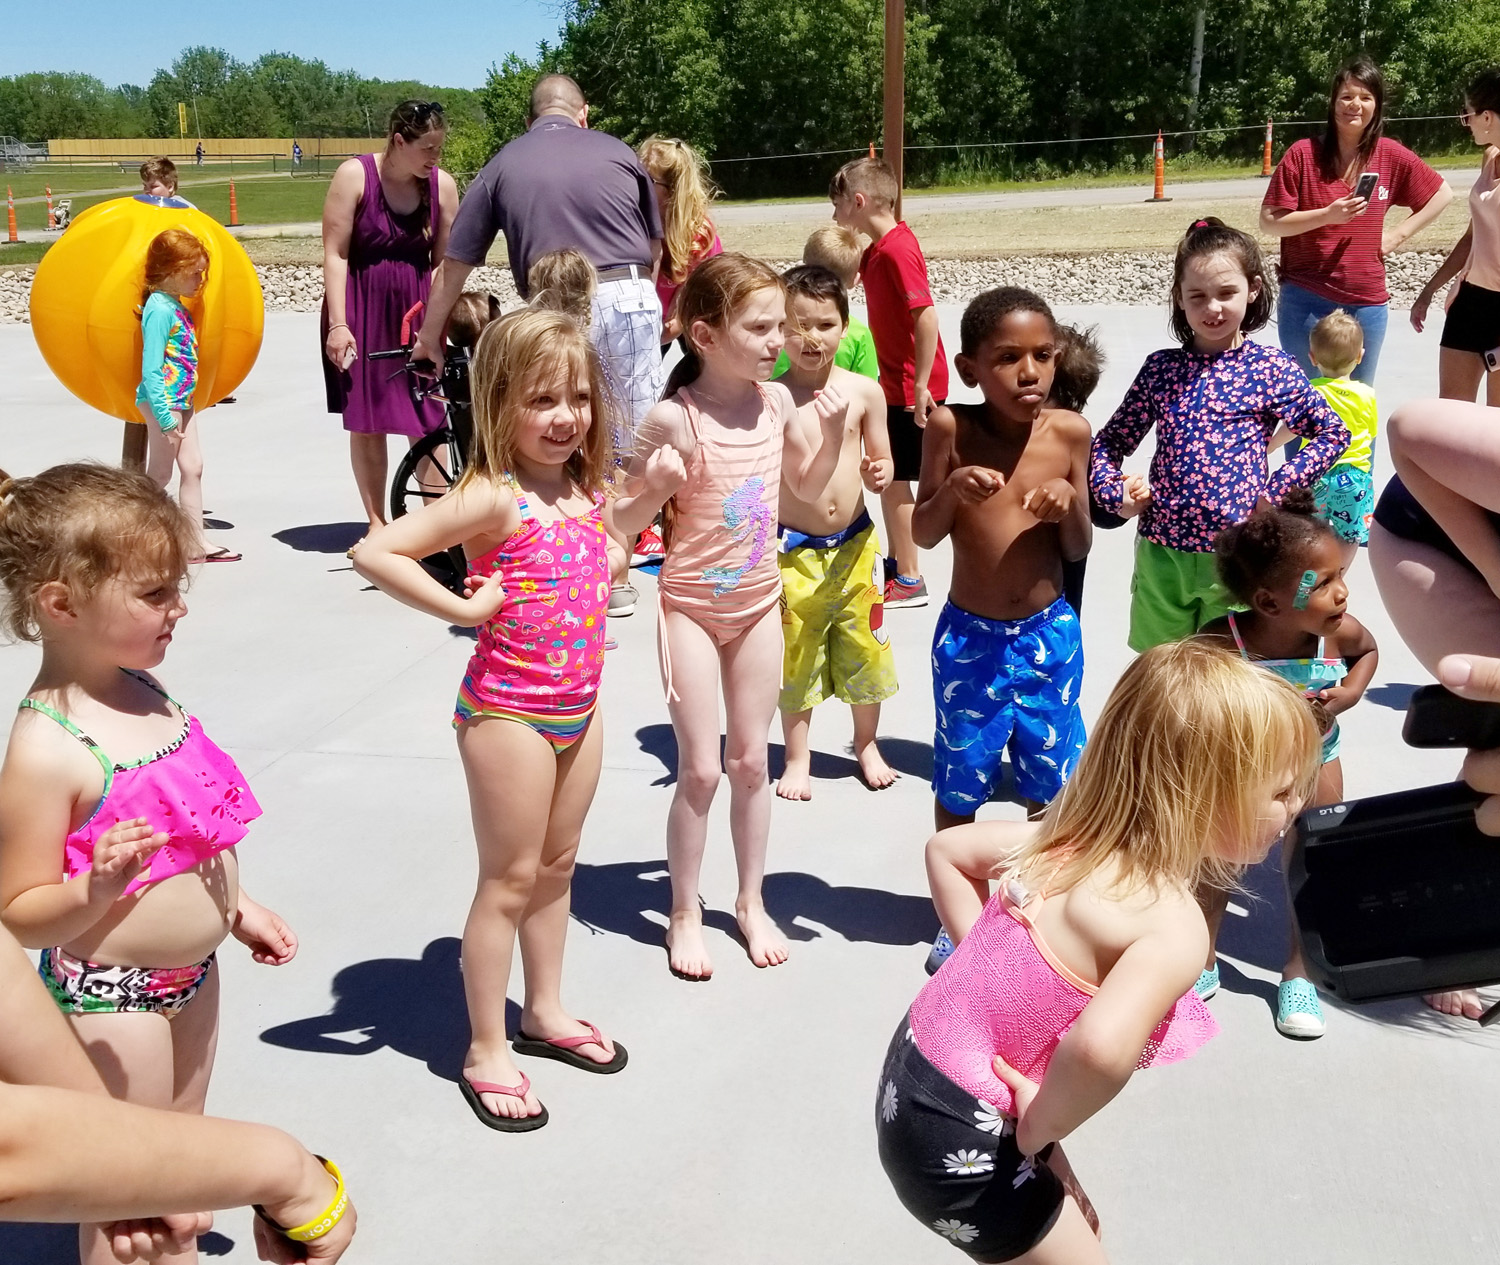 Kids eagerly await the water turning on in the new Splash Pad. Water flowed just after this photo was taken. Photo by Dianne Hickerson